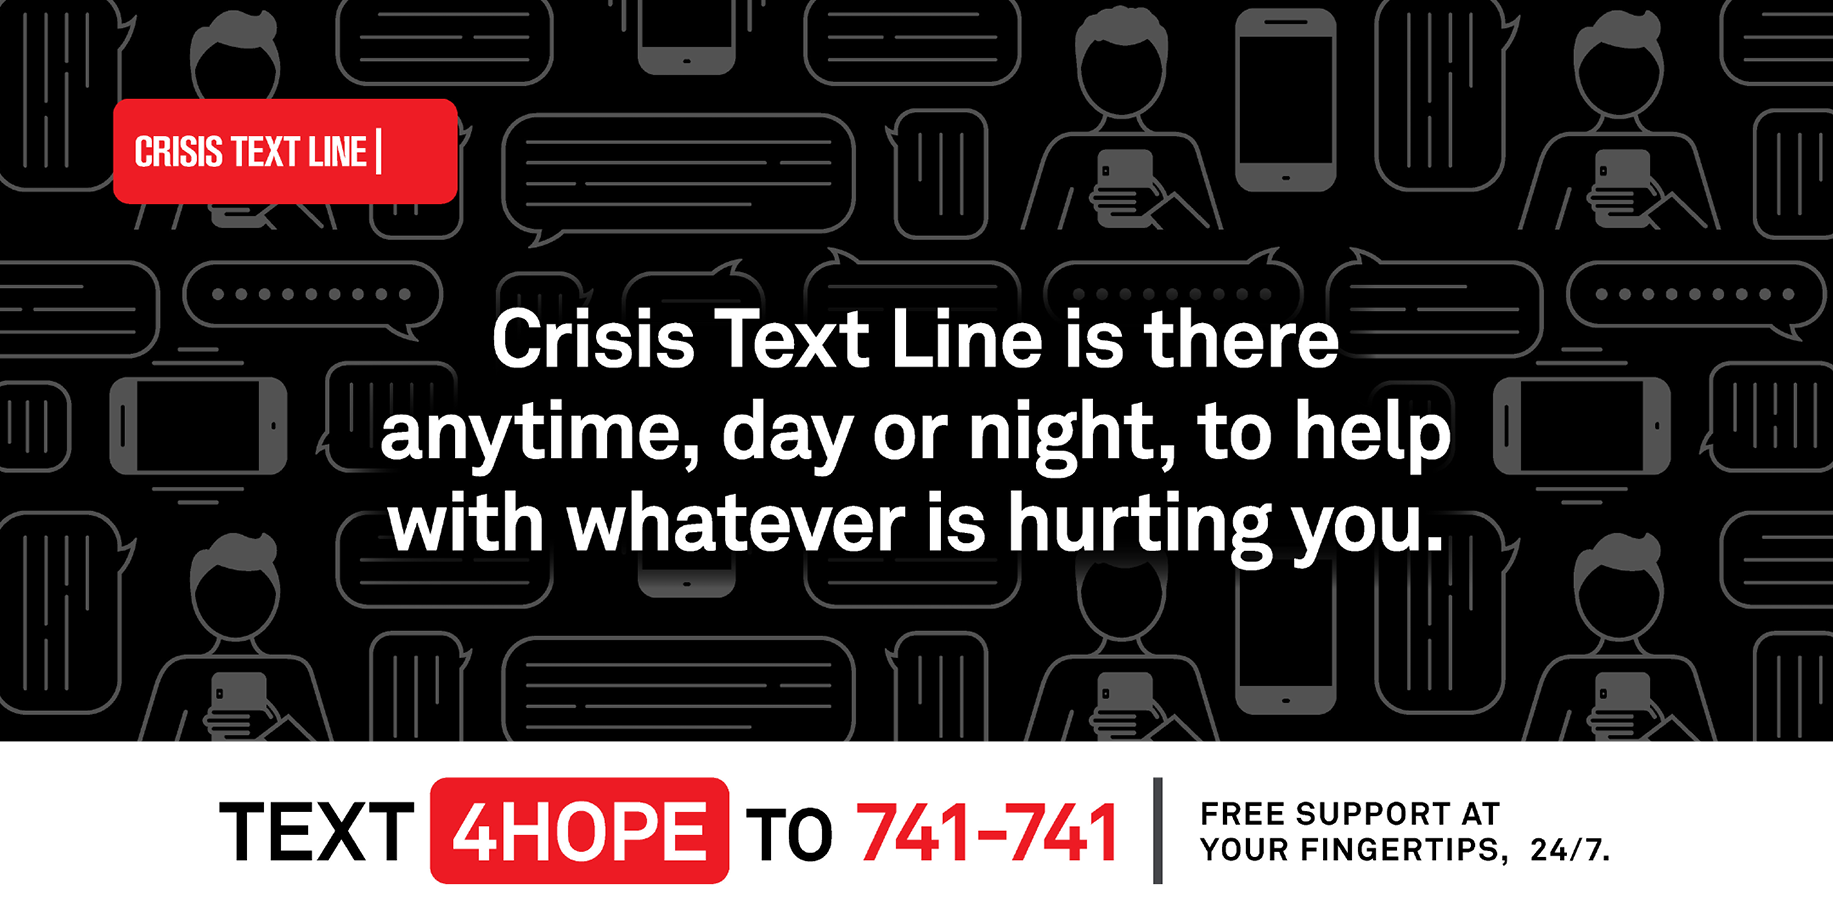 TEXT 4HOPE TO 741-741 INFO